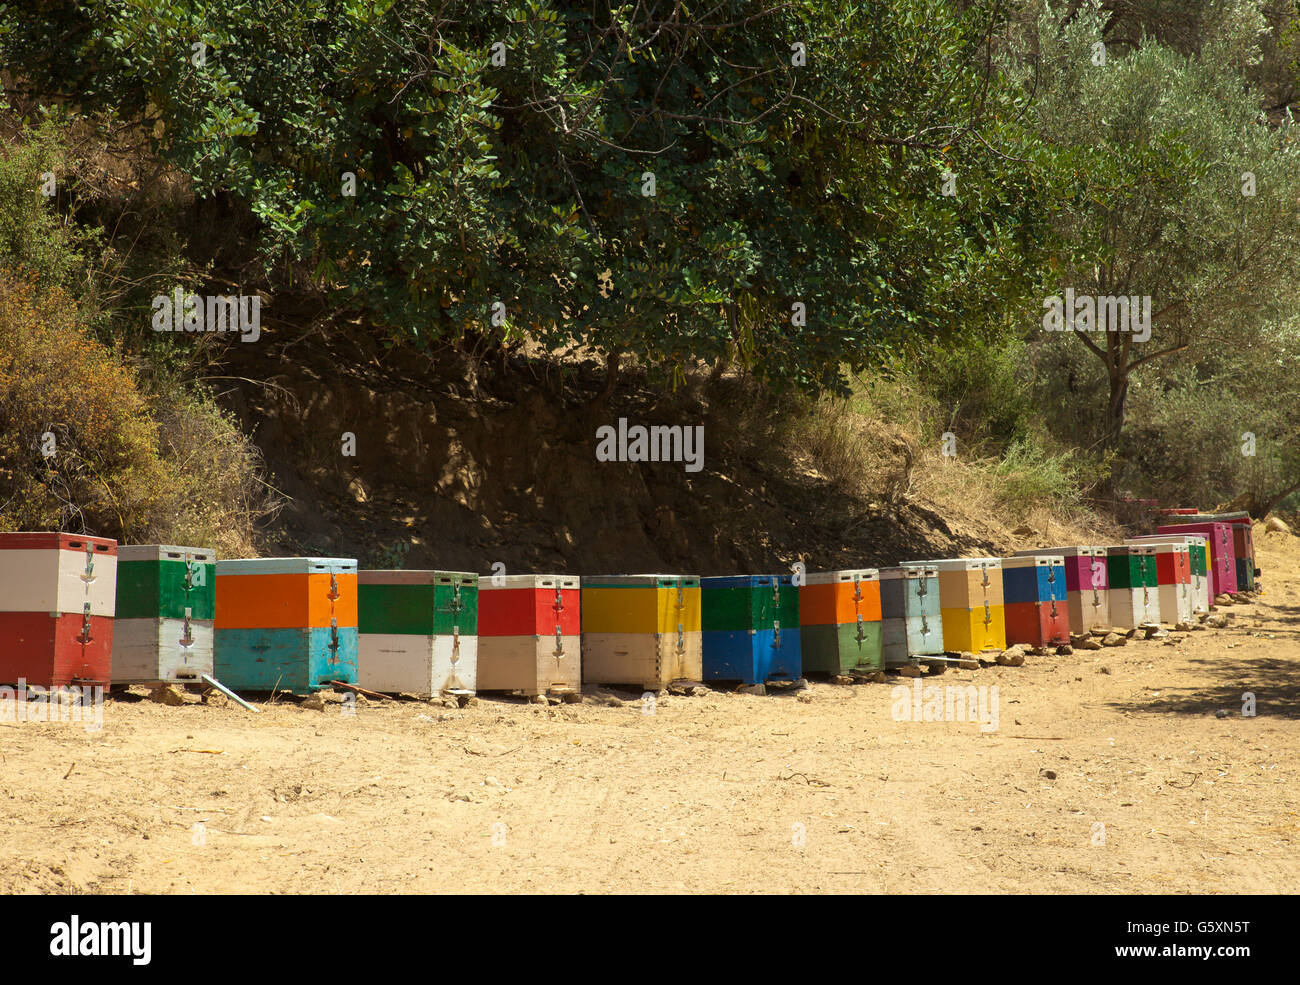 Row of beehives, in Crete, Greece. - Stock Image